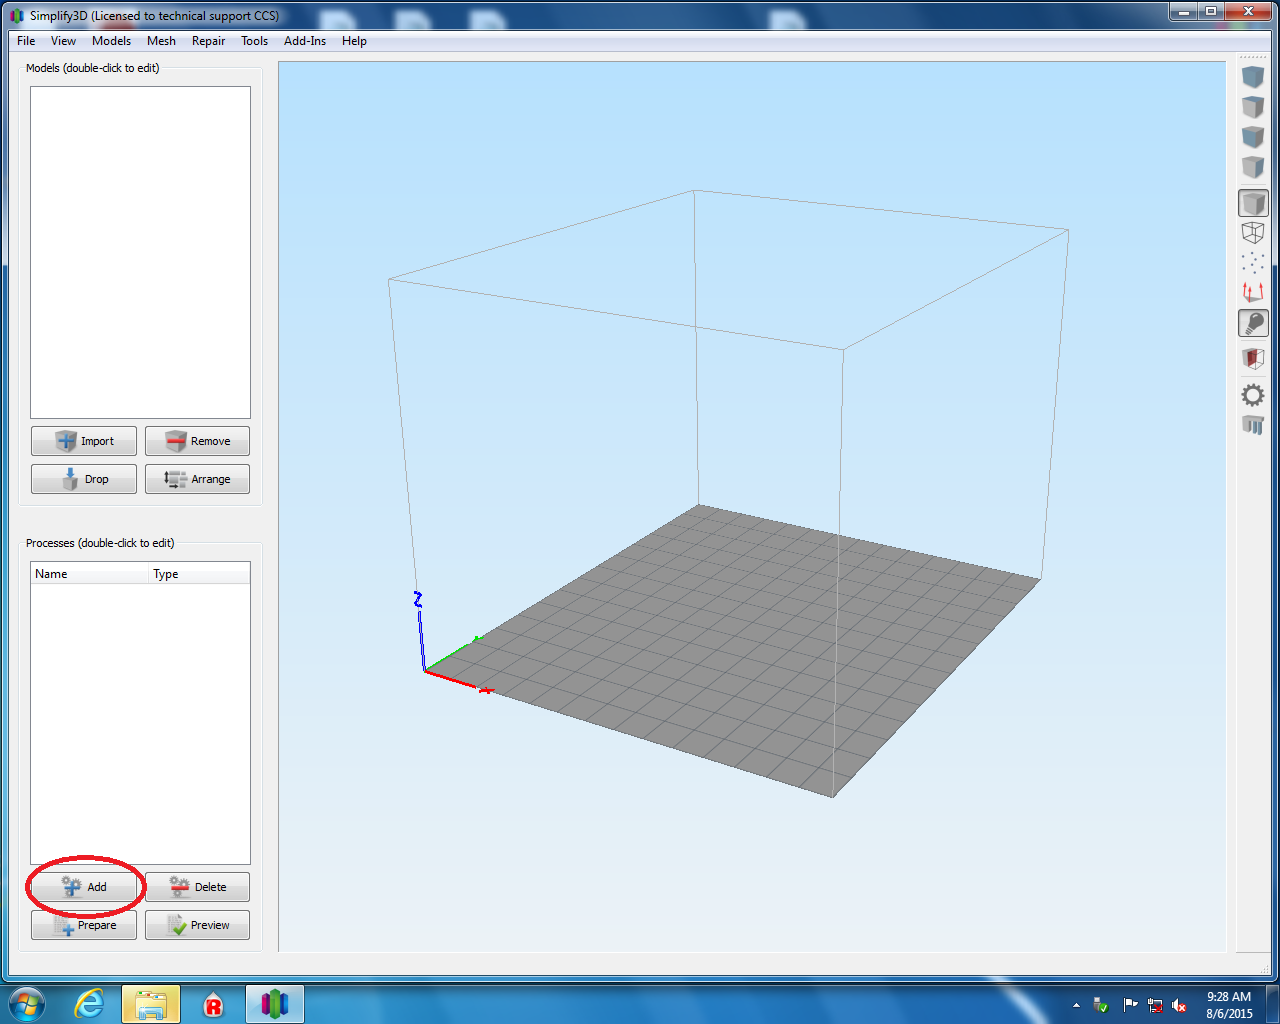 How to Import Downloaded Print Profiles into Simplify 3D : Leapfrog